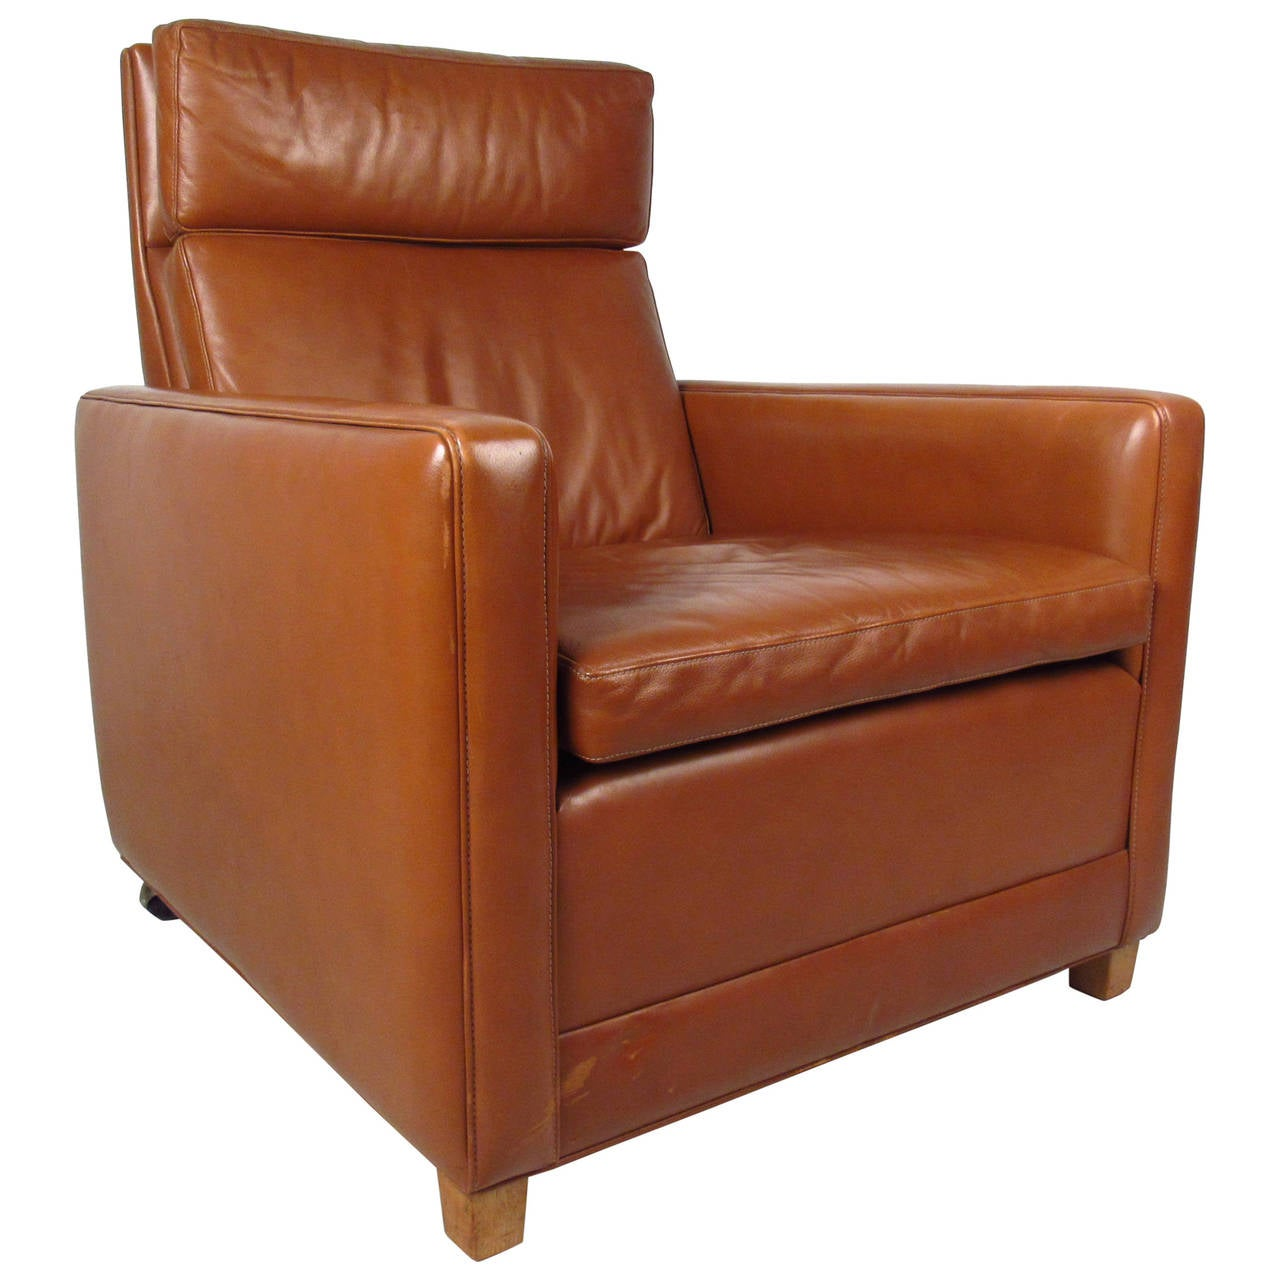 b rge mogensen leather lounge chaira for sale at 1stdibs. Black Bedroom Furniture Sets. Home Design Ideas